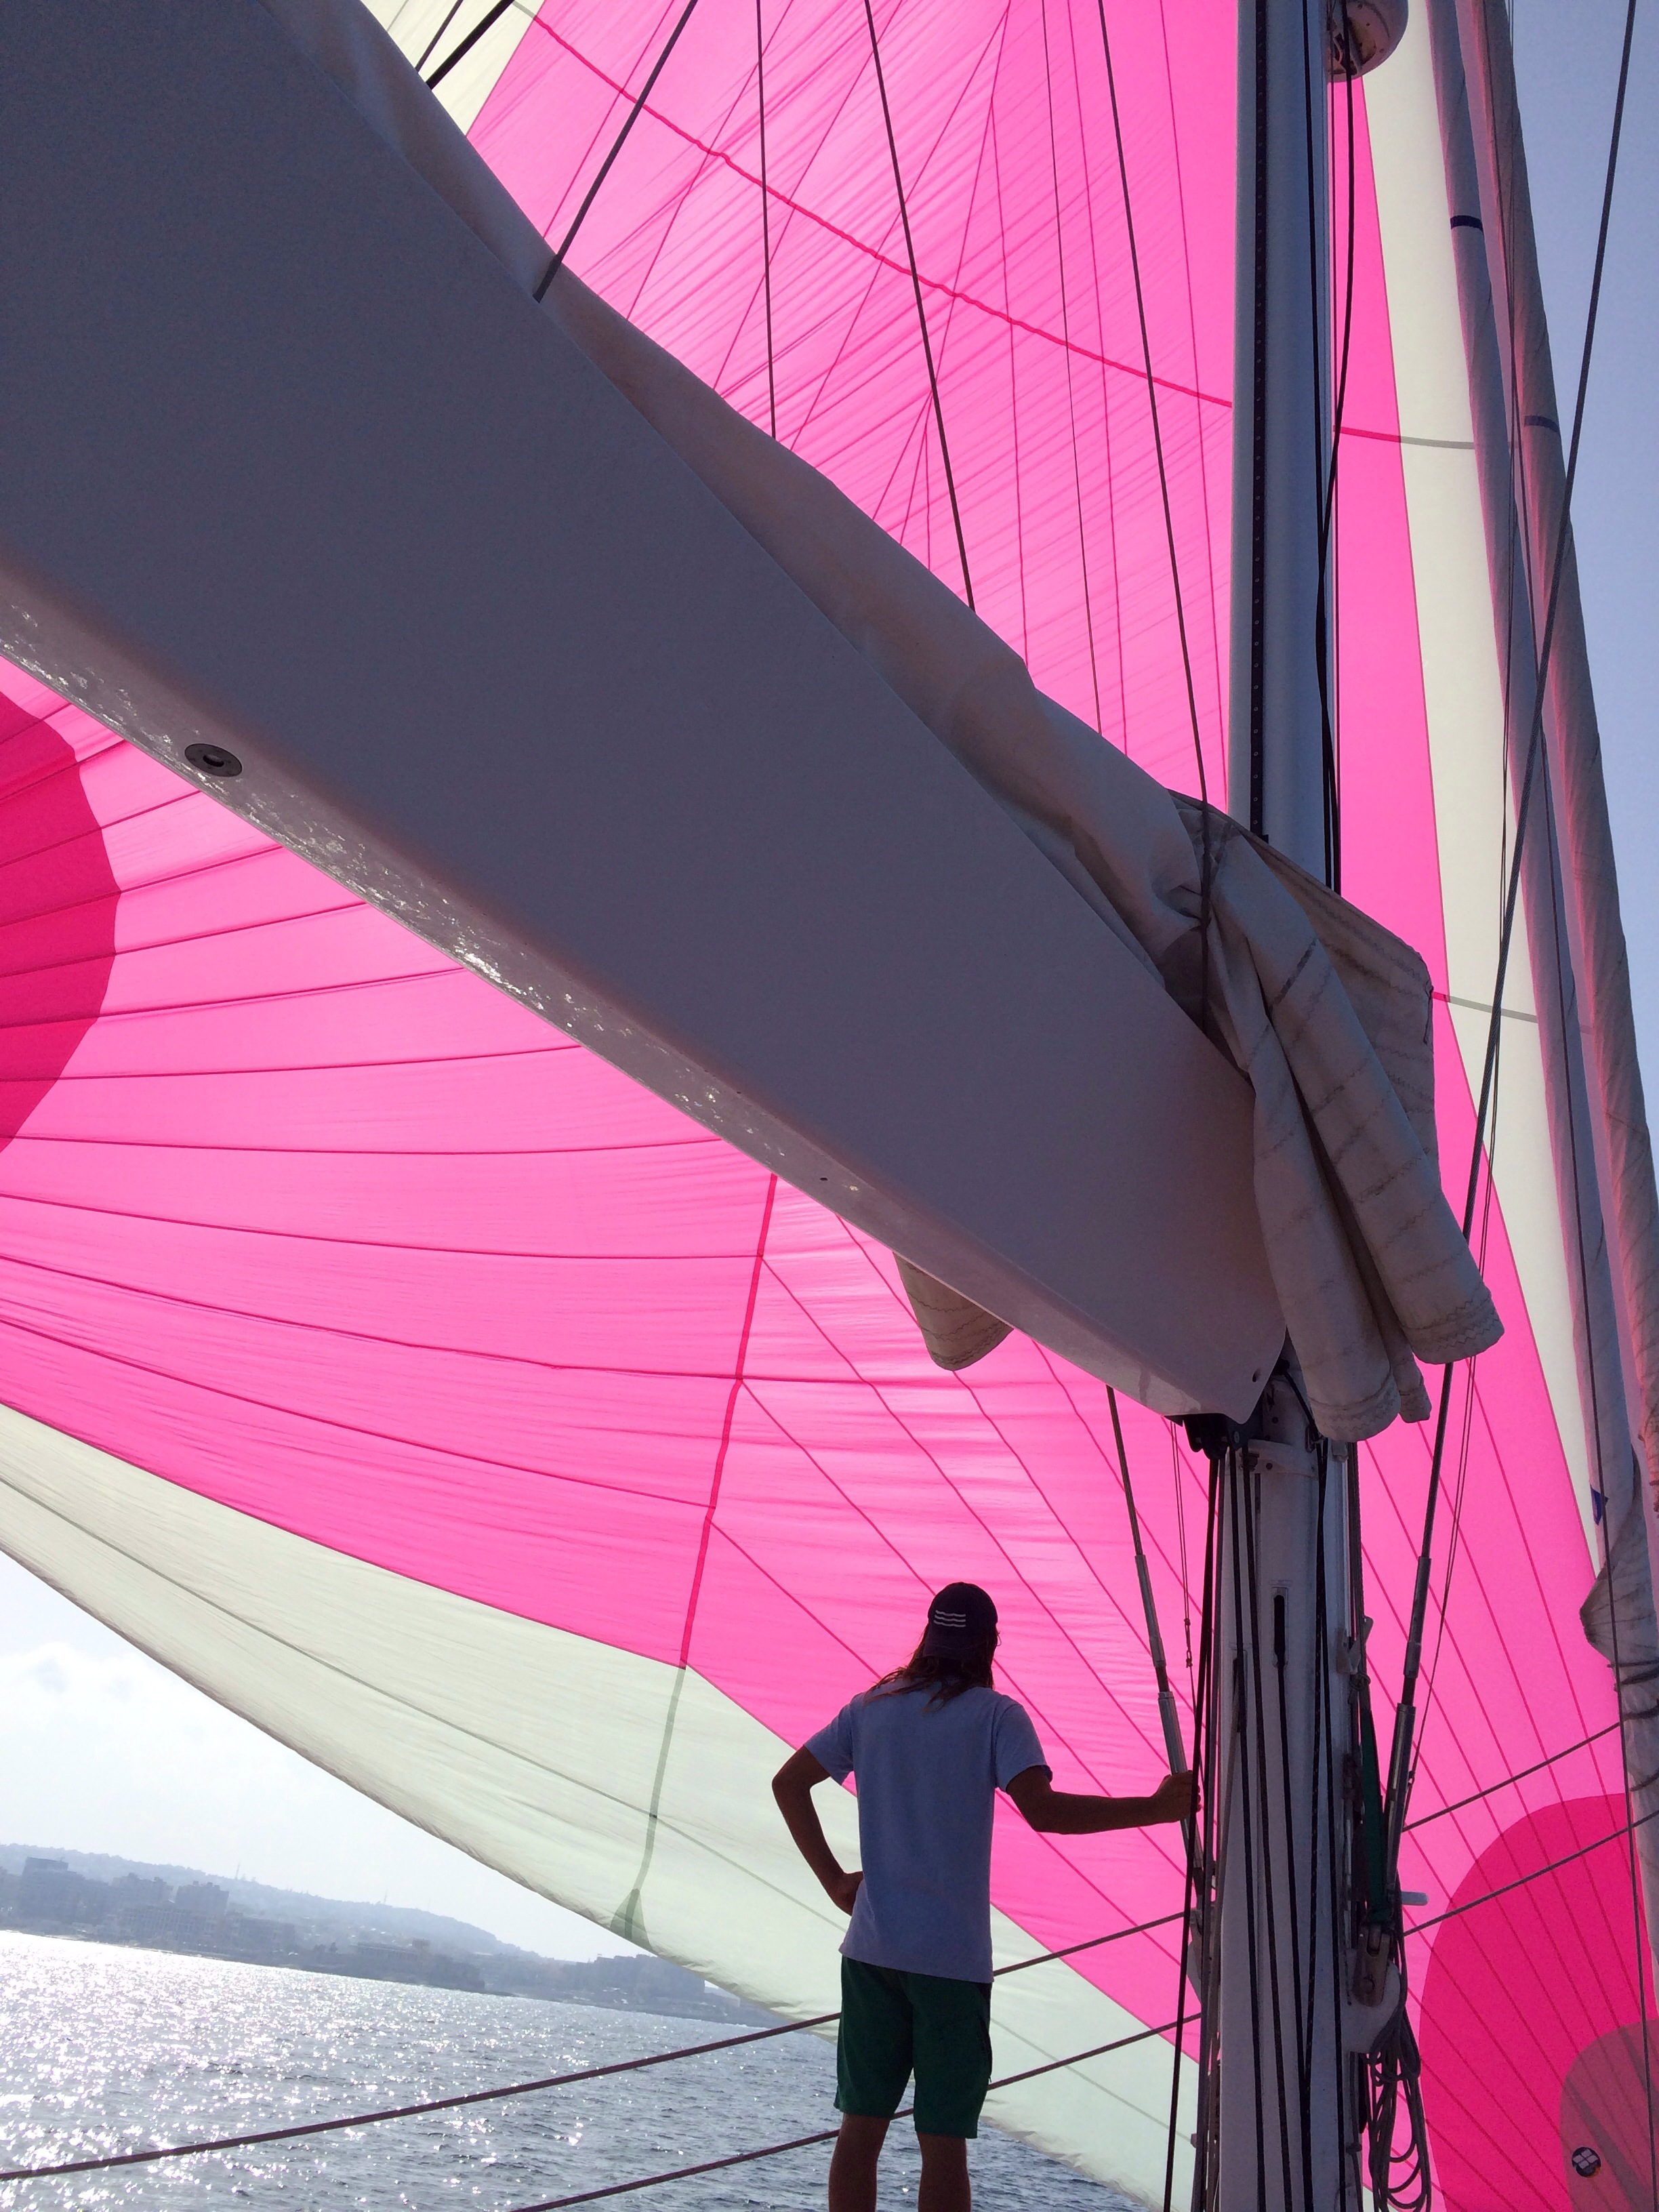 Hot pink sail--oh yes!